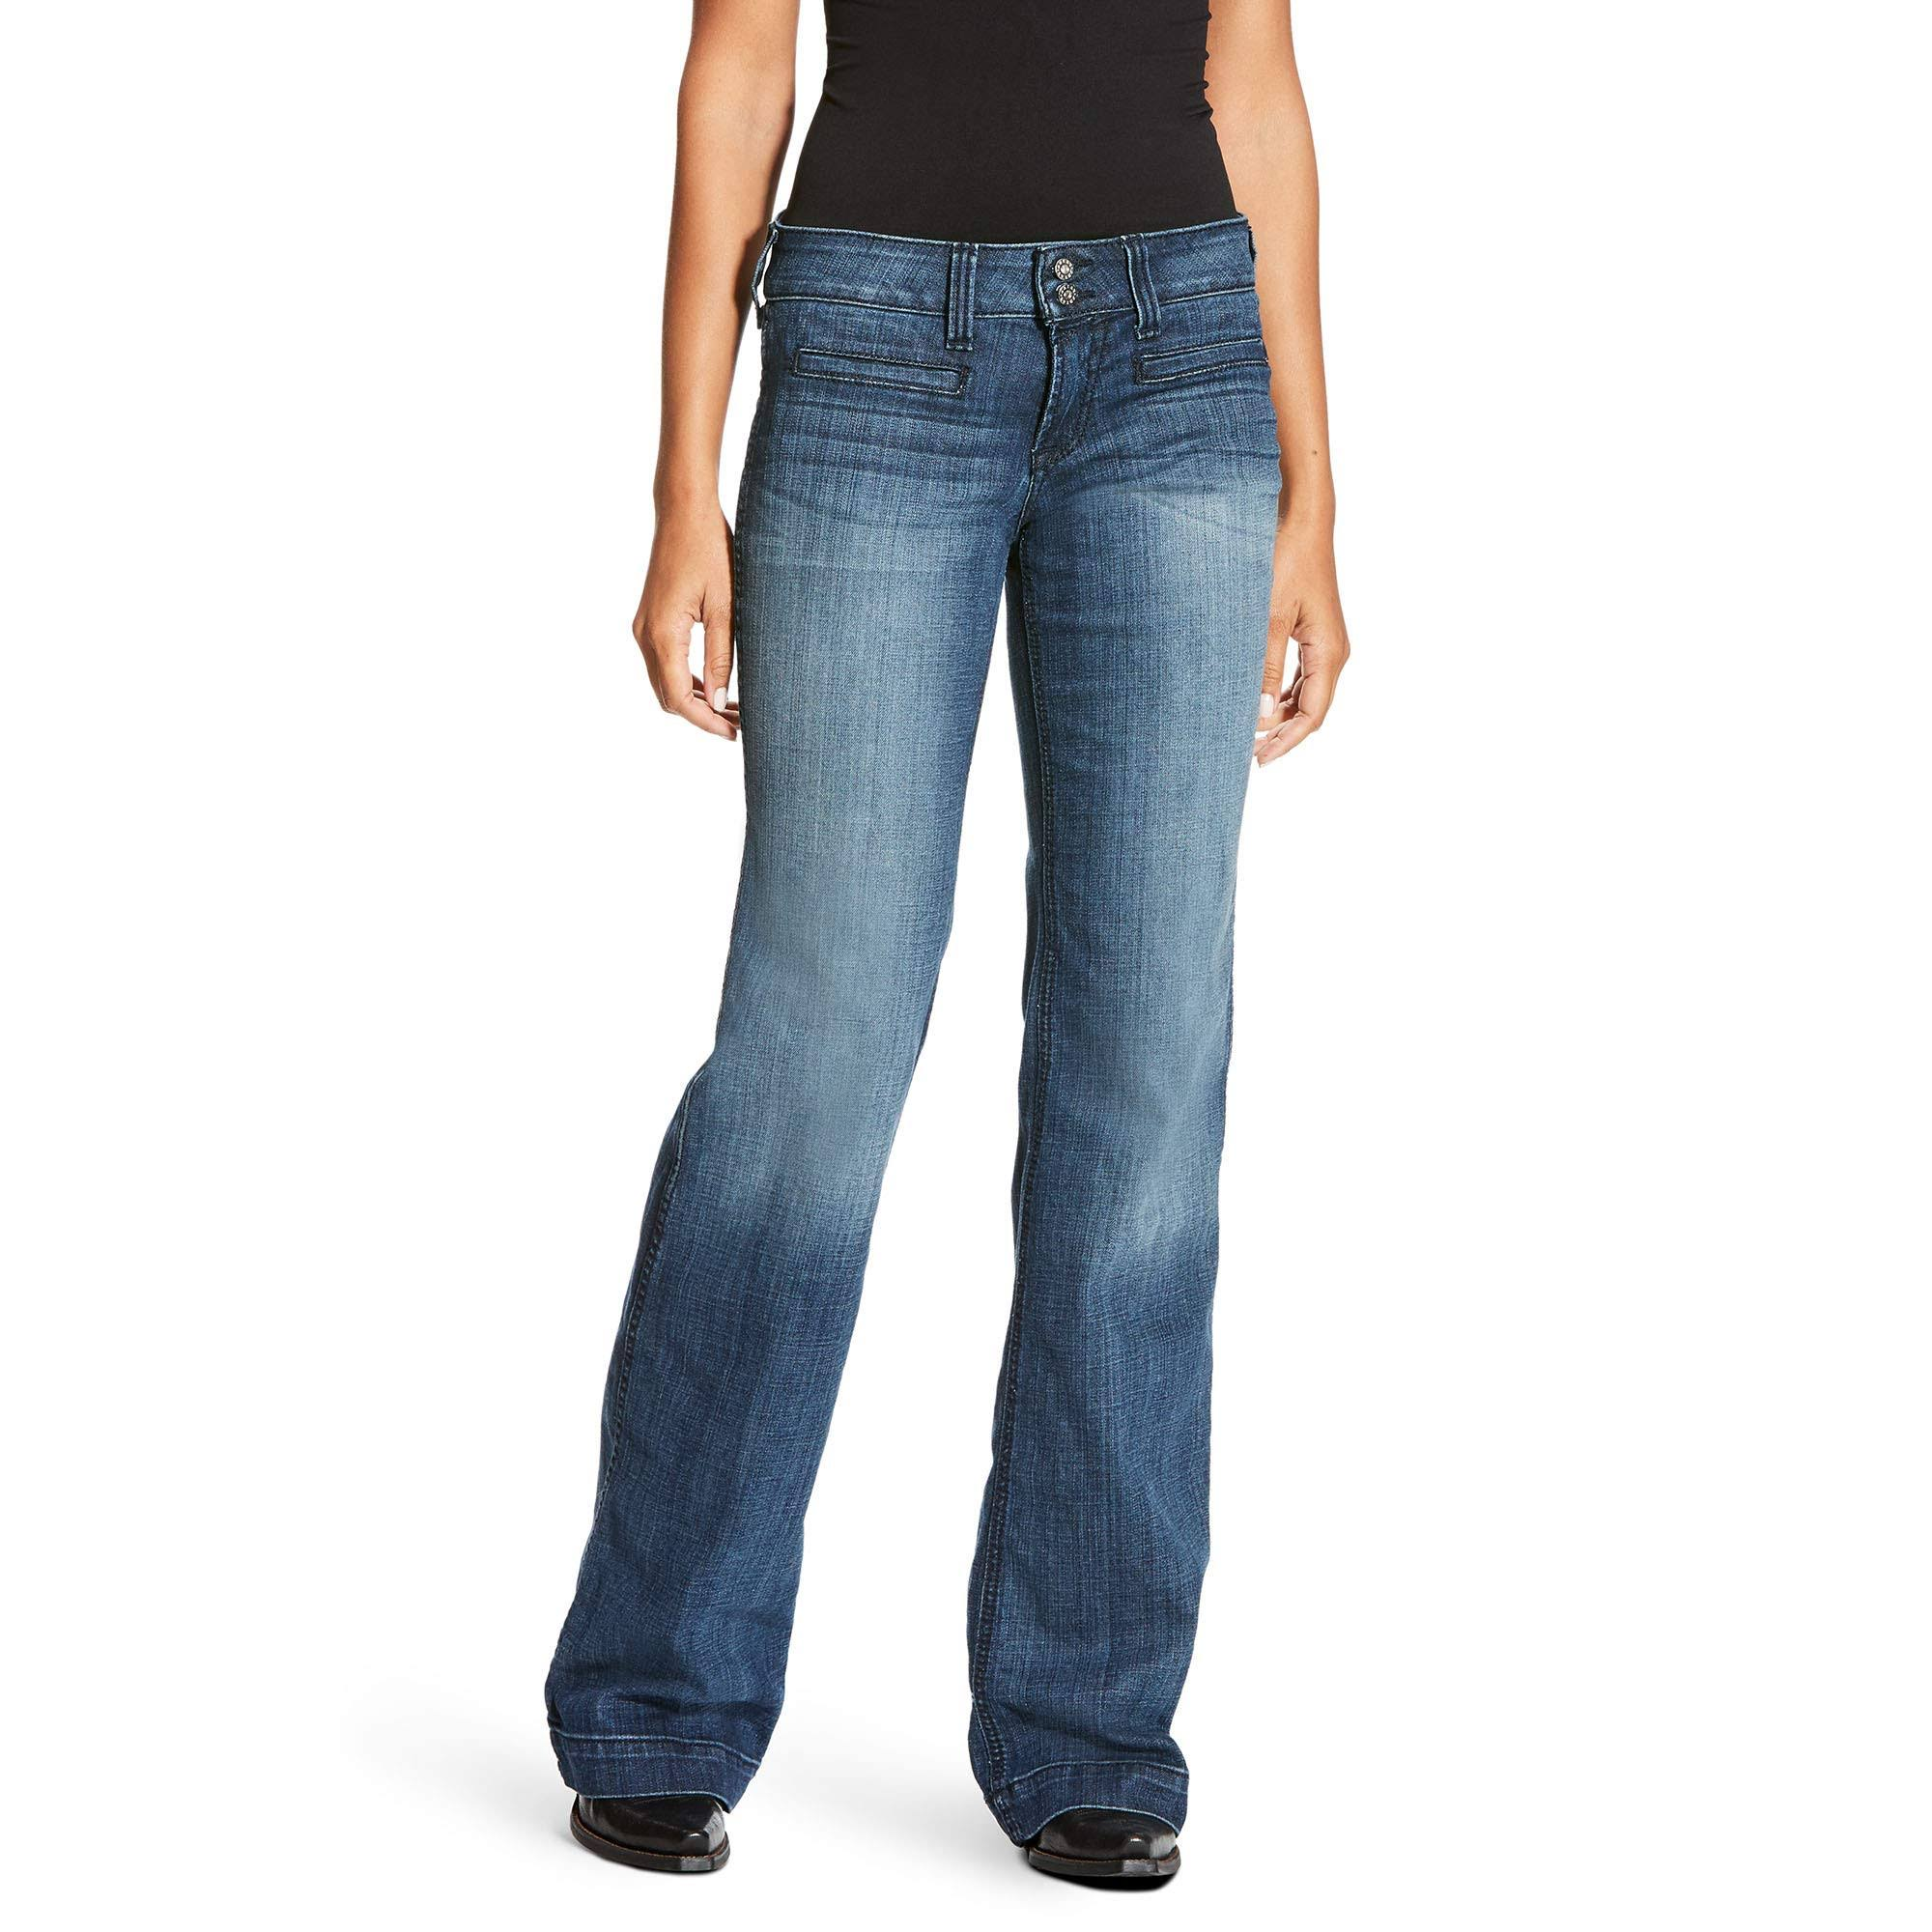 Ariat Womens Ella Trouser Jeans